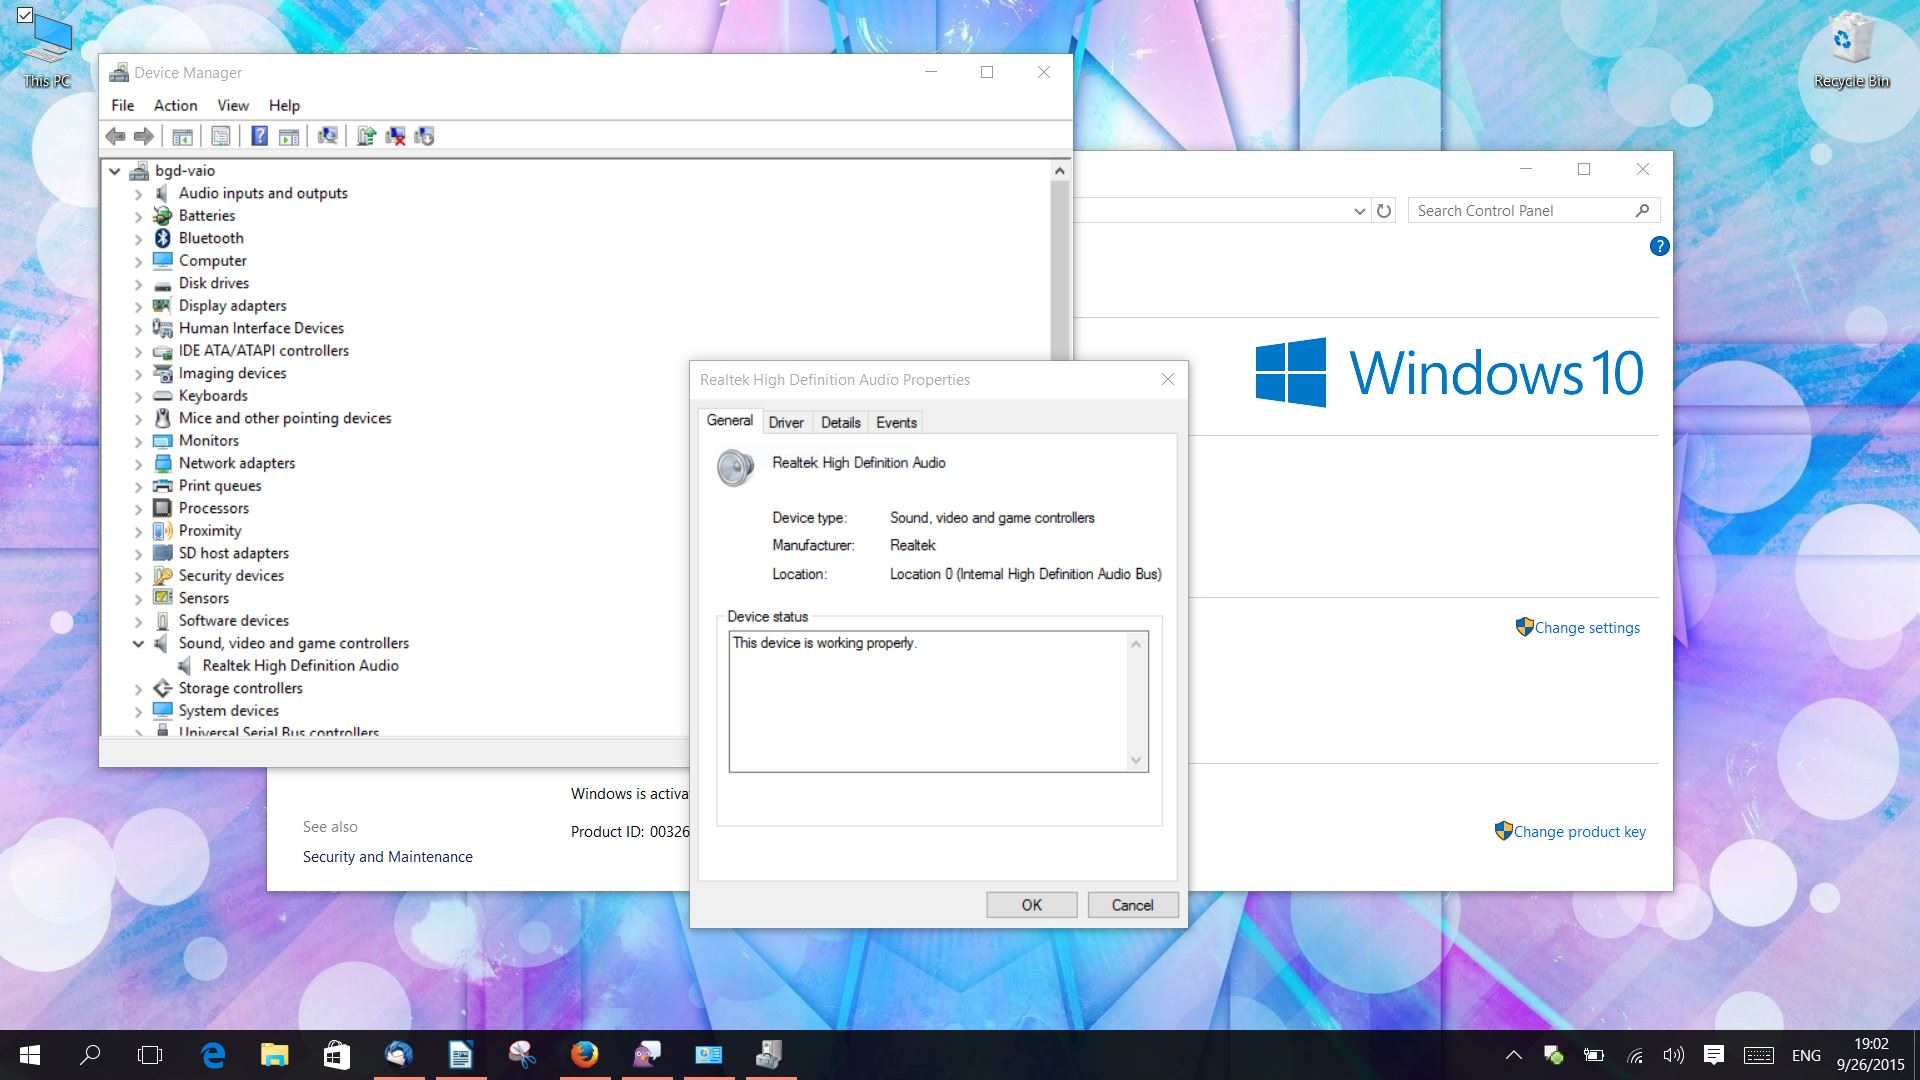 No Sound After Installing Windows 10 Updates? Microsoft Has